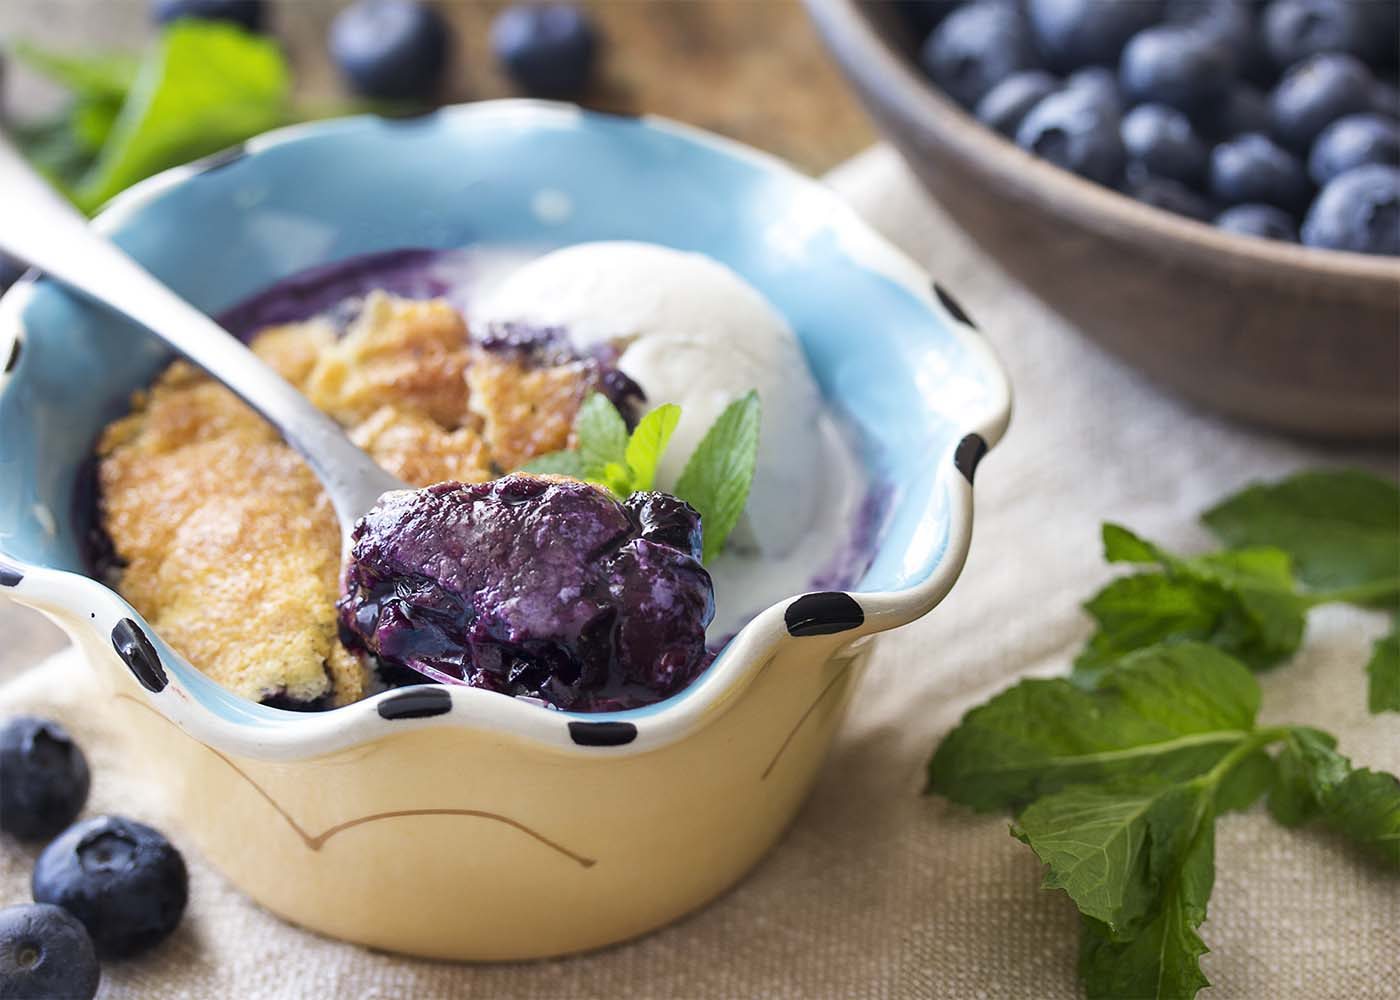 A dessert bowl of cobbler with a spoon scooping out a bite. Blueberries and mint leaves scattered about the table.